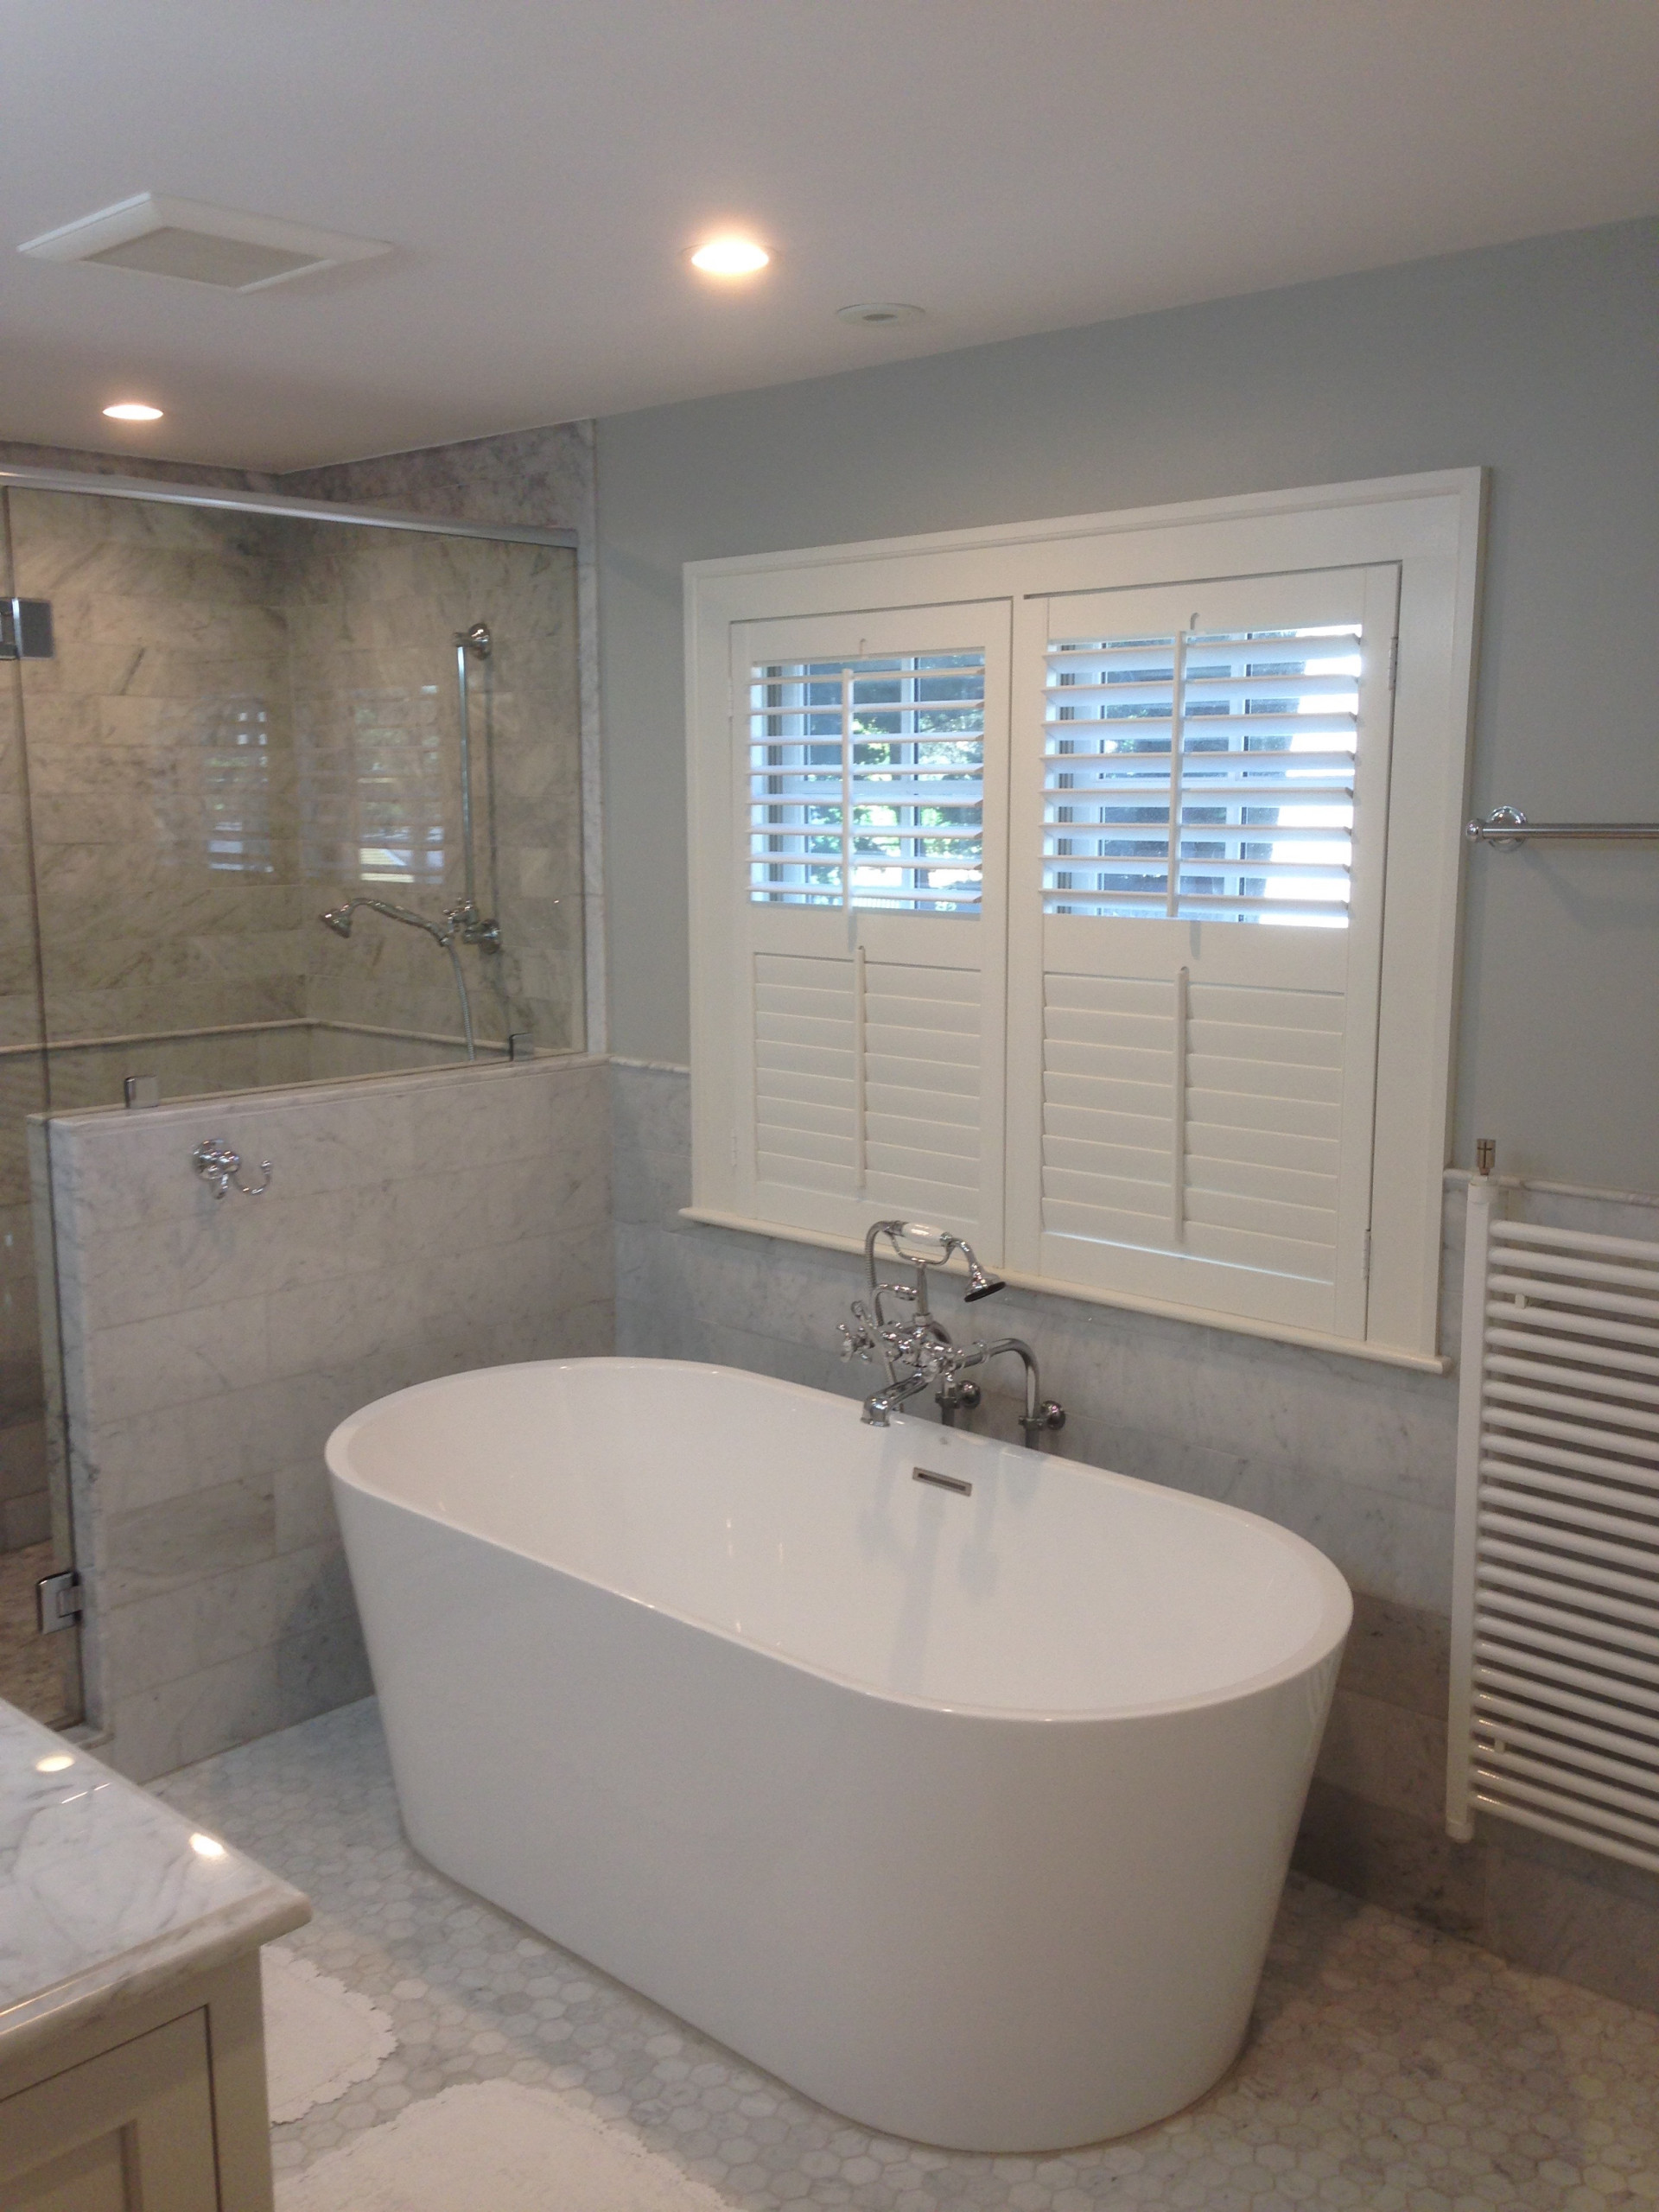 soaking tub below windows